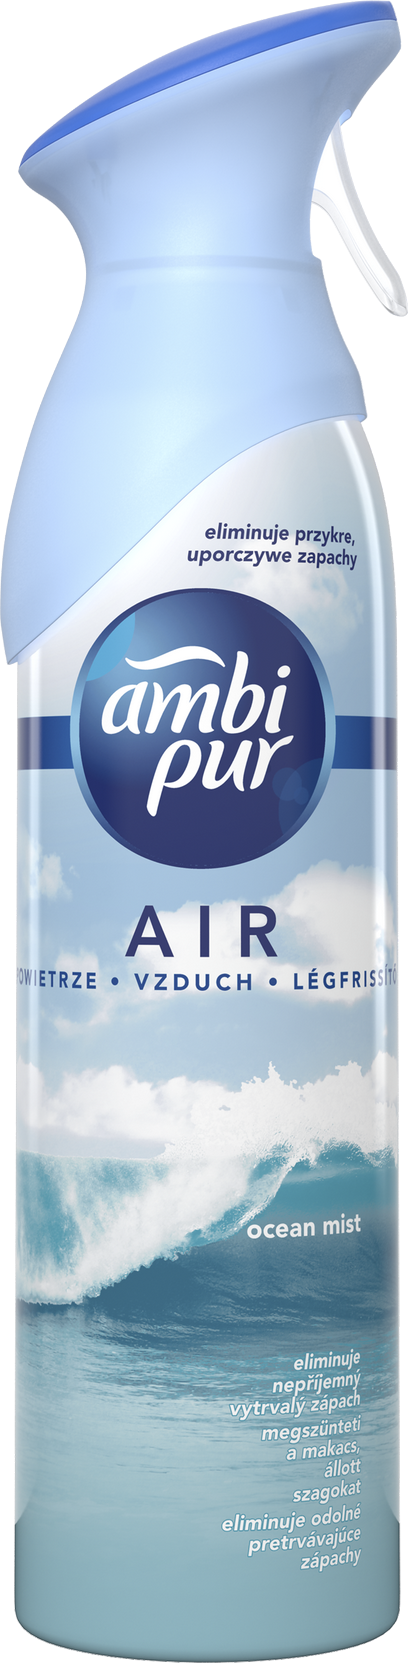 AMBI PUR Spray Ocean & Mist 300 ml